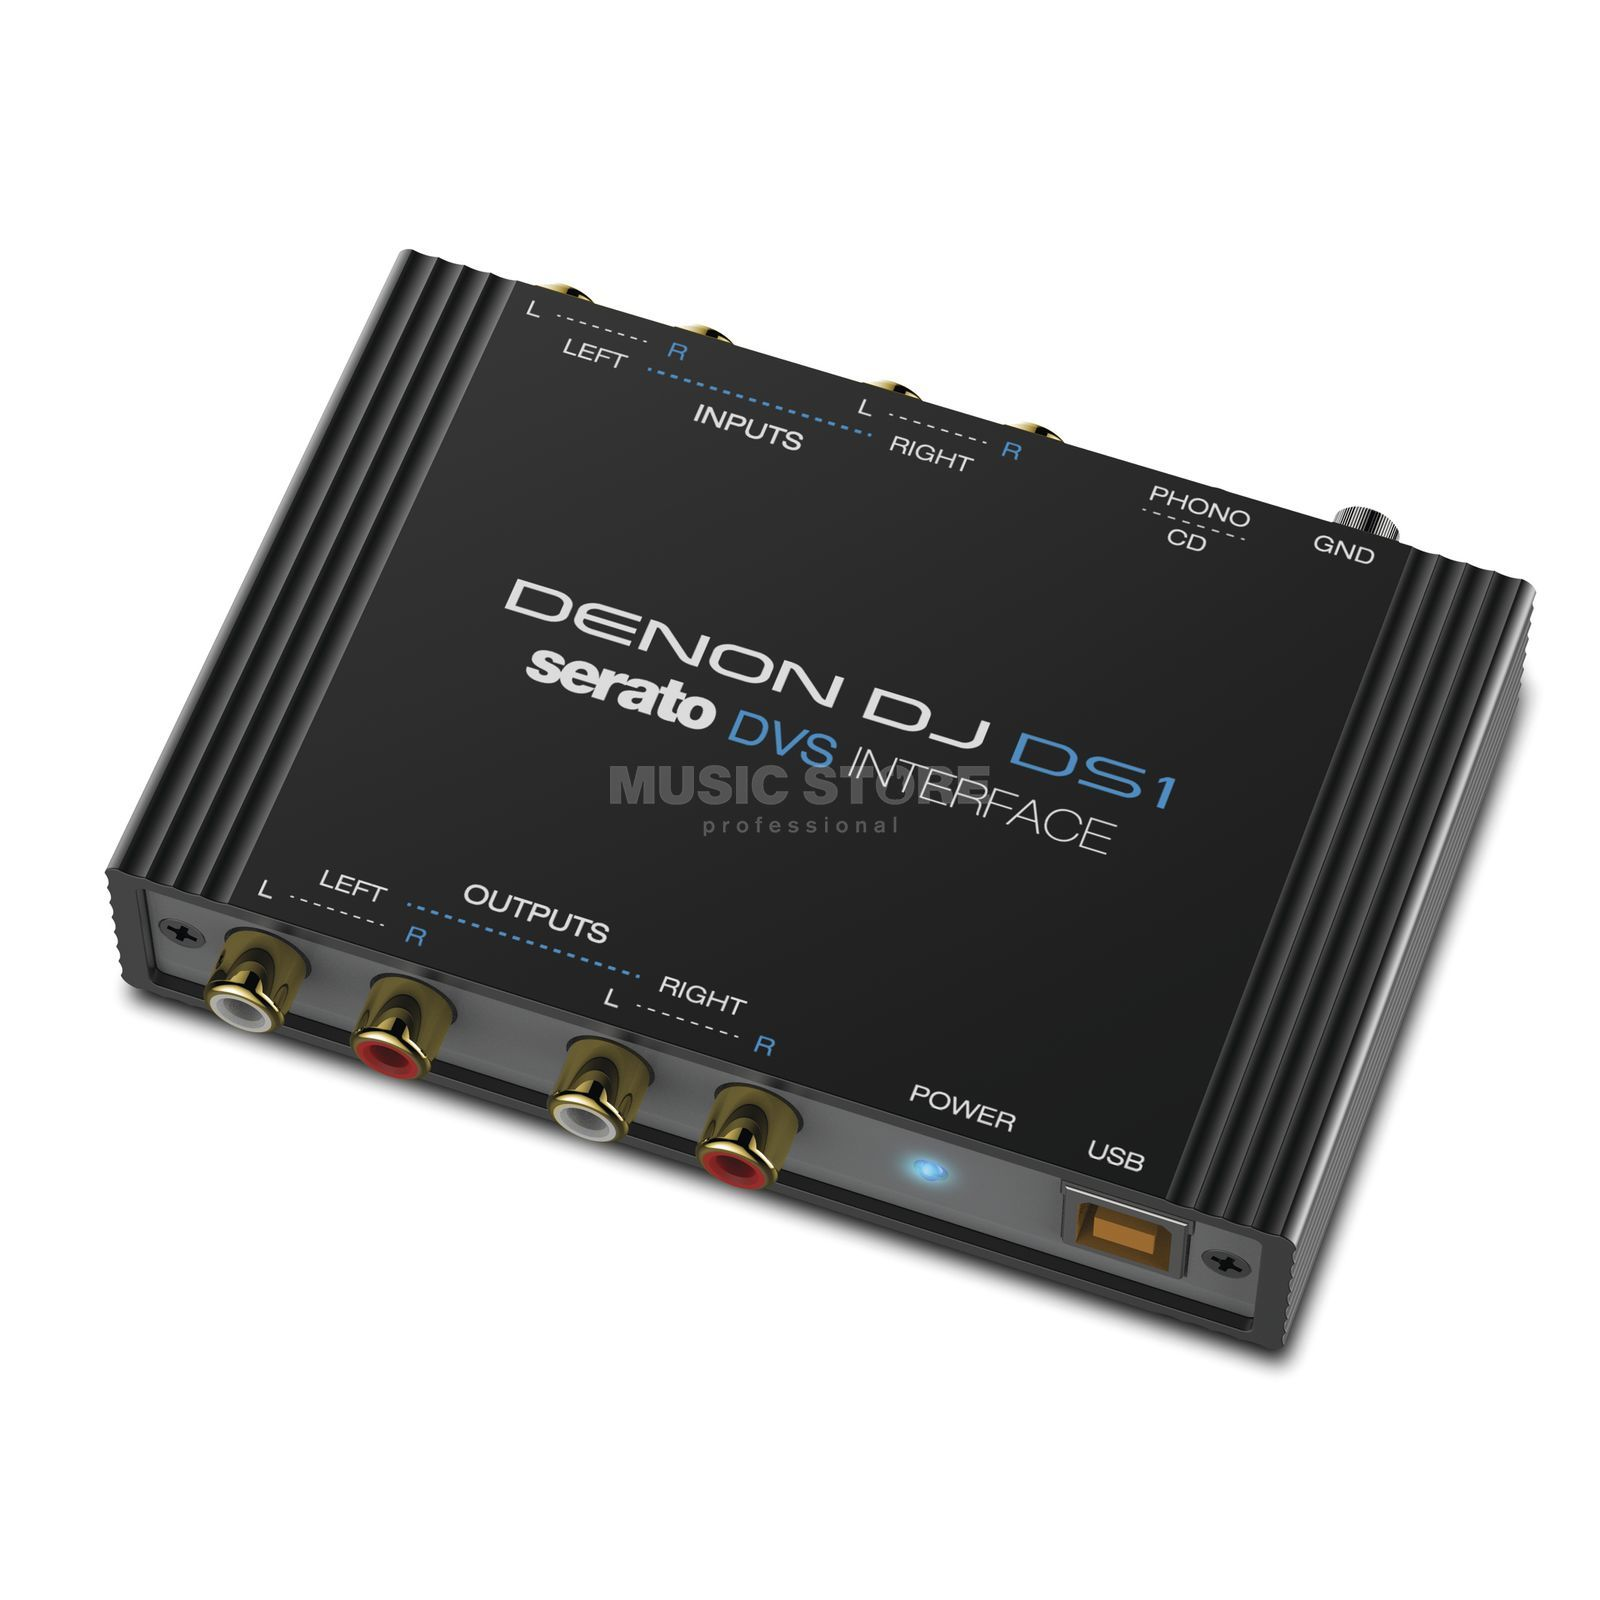 Denon DJ DS1 - DVS Interface for Serato DJ Εικόνα προιόντος